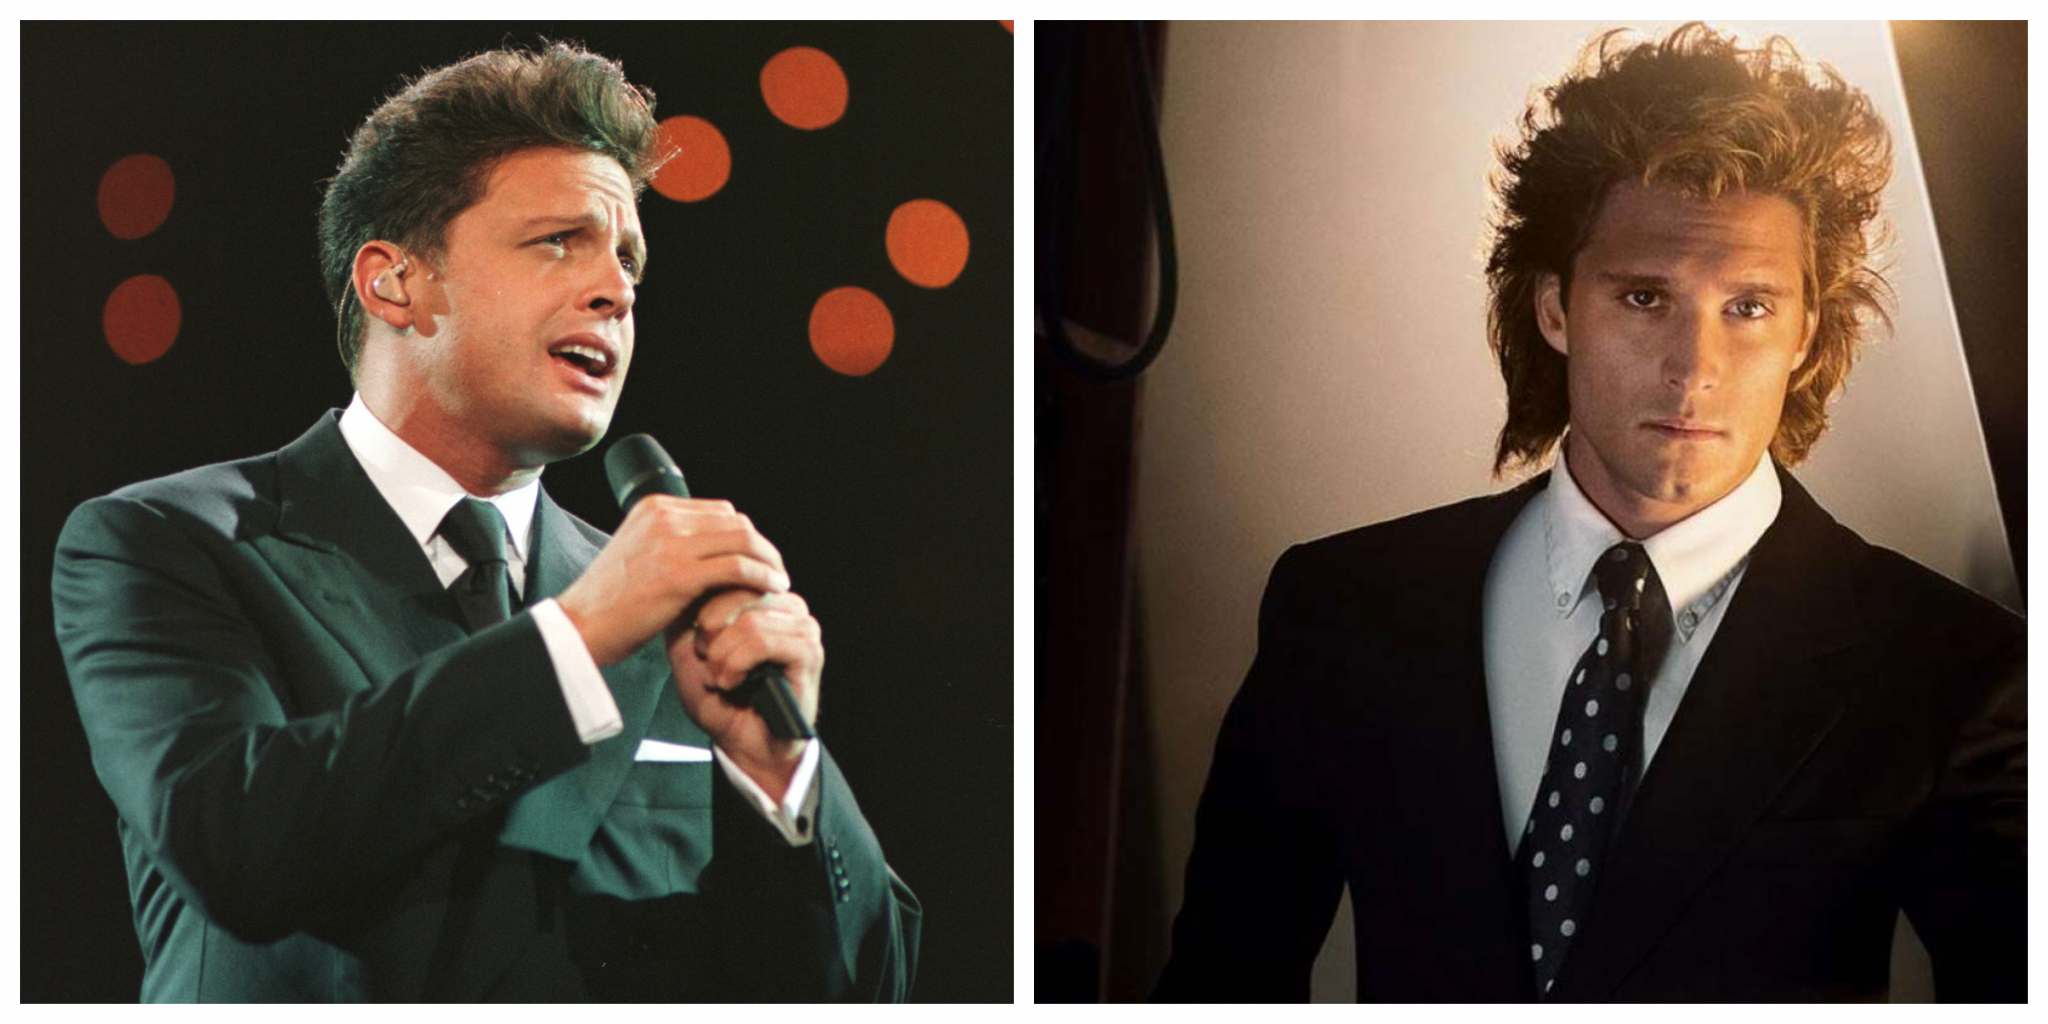 Luis Miguel stars onstage in Houston and on the small screen